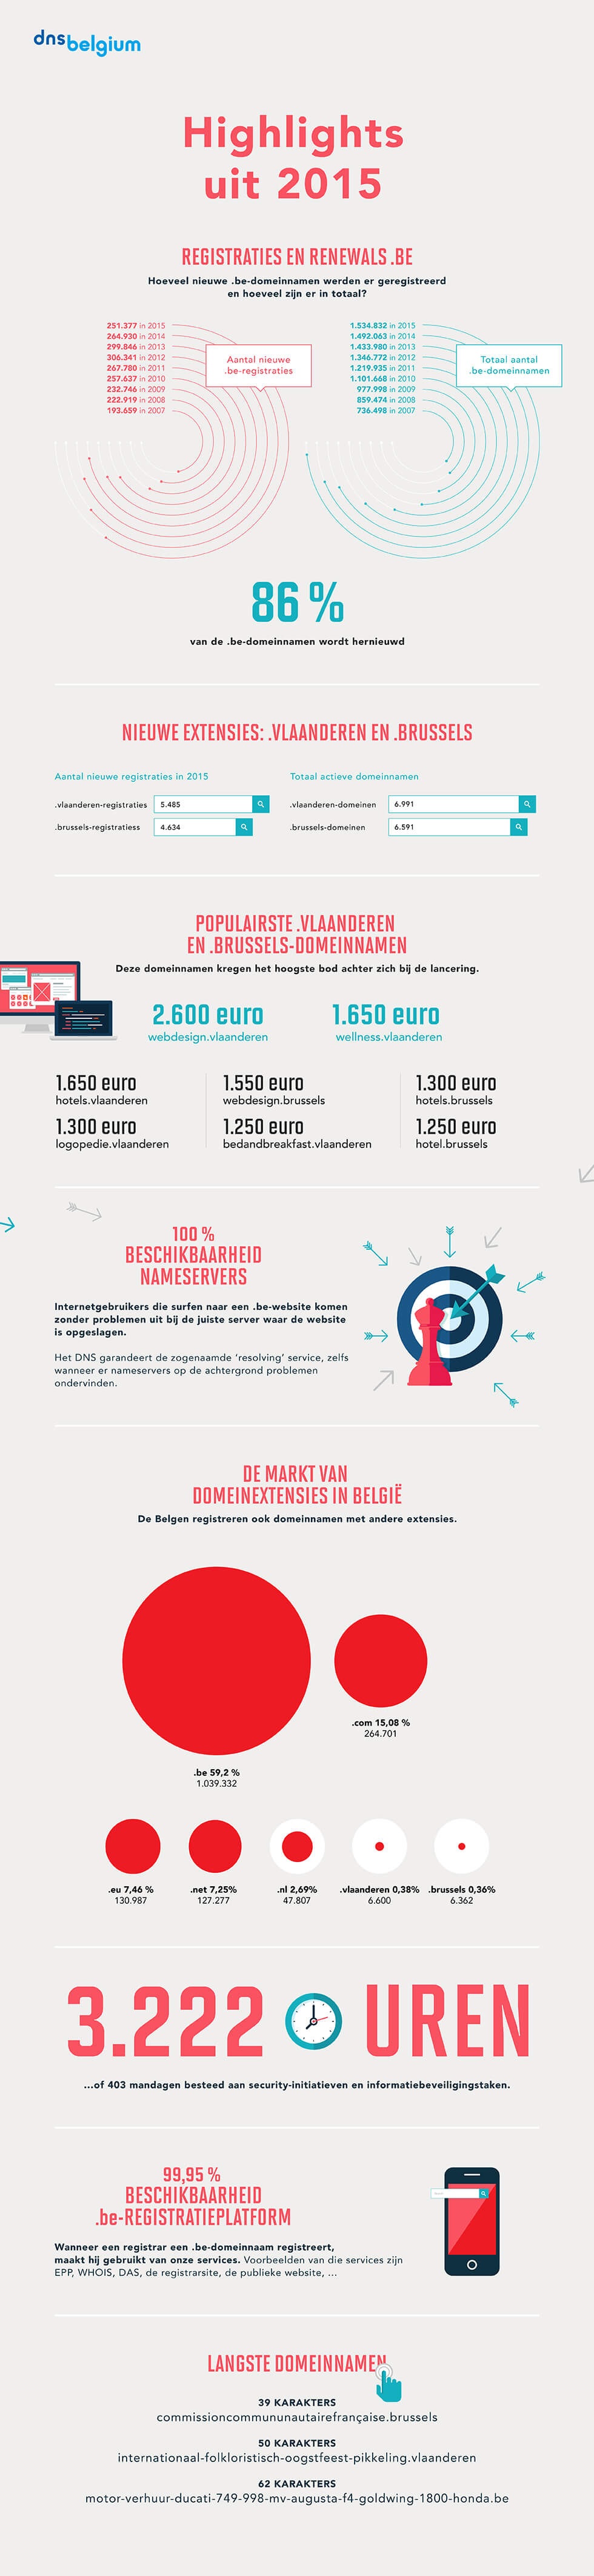 DNS infographic 2015